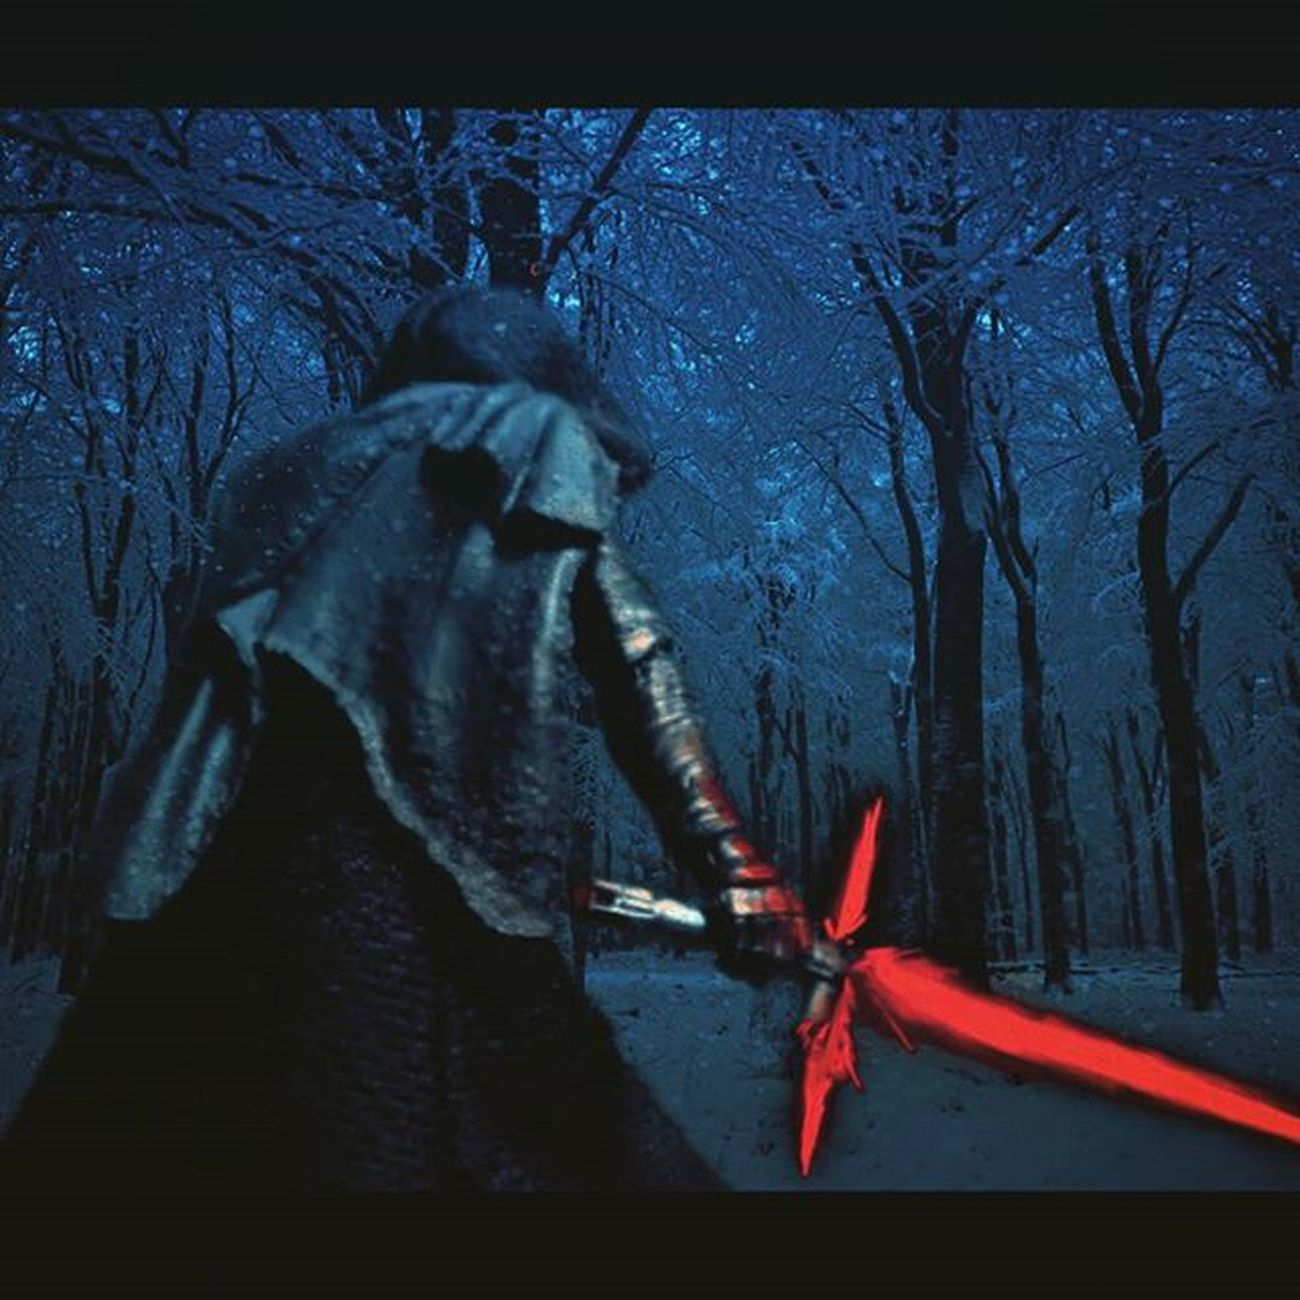 """There has been a awakening have you felt it?"" Starwars Blackseries Theblackseries TheForceAwakens Starwarstheforceawakens KyloRen Figurecollection Collection Collector Articulatedcomicbook ACBA Episode7 Actionfigurephotography Actiontoyart Figures Toyslagram Toysmydrugs Toystagram Toycommunity Toyphotogallery Ata_dreadnoughts Toysartistry Toyartistry_elite Toynation Toyunion actionfigureoutcast toycrewbuddies"